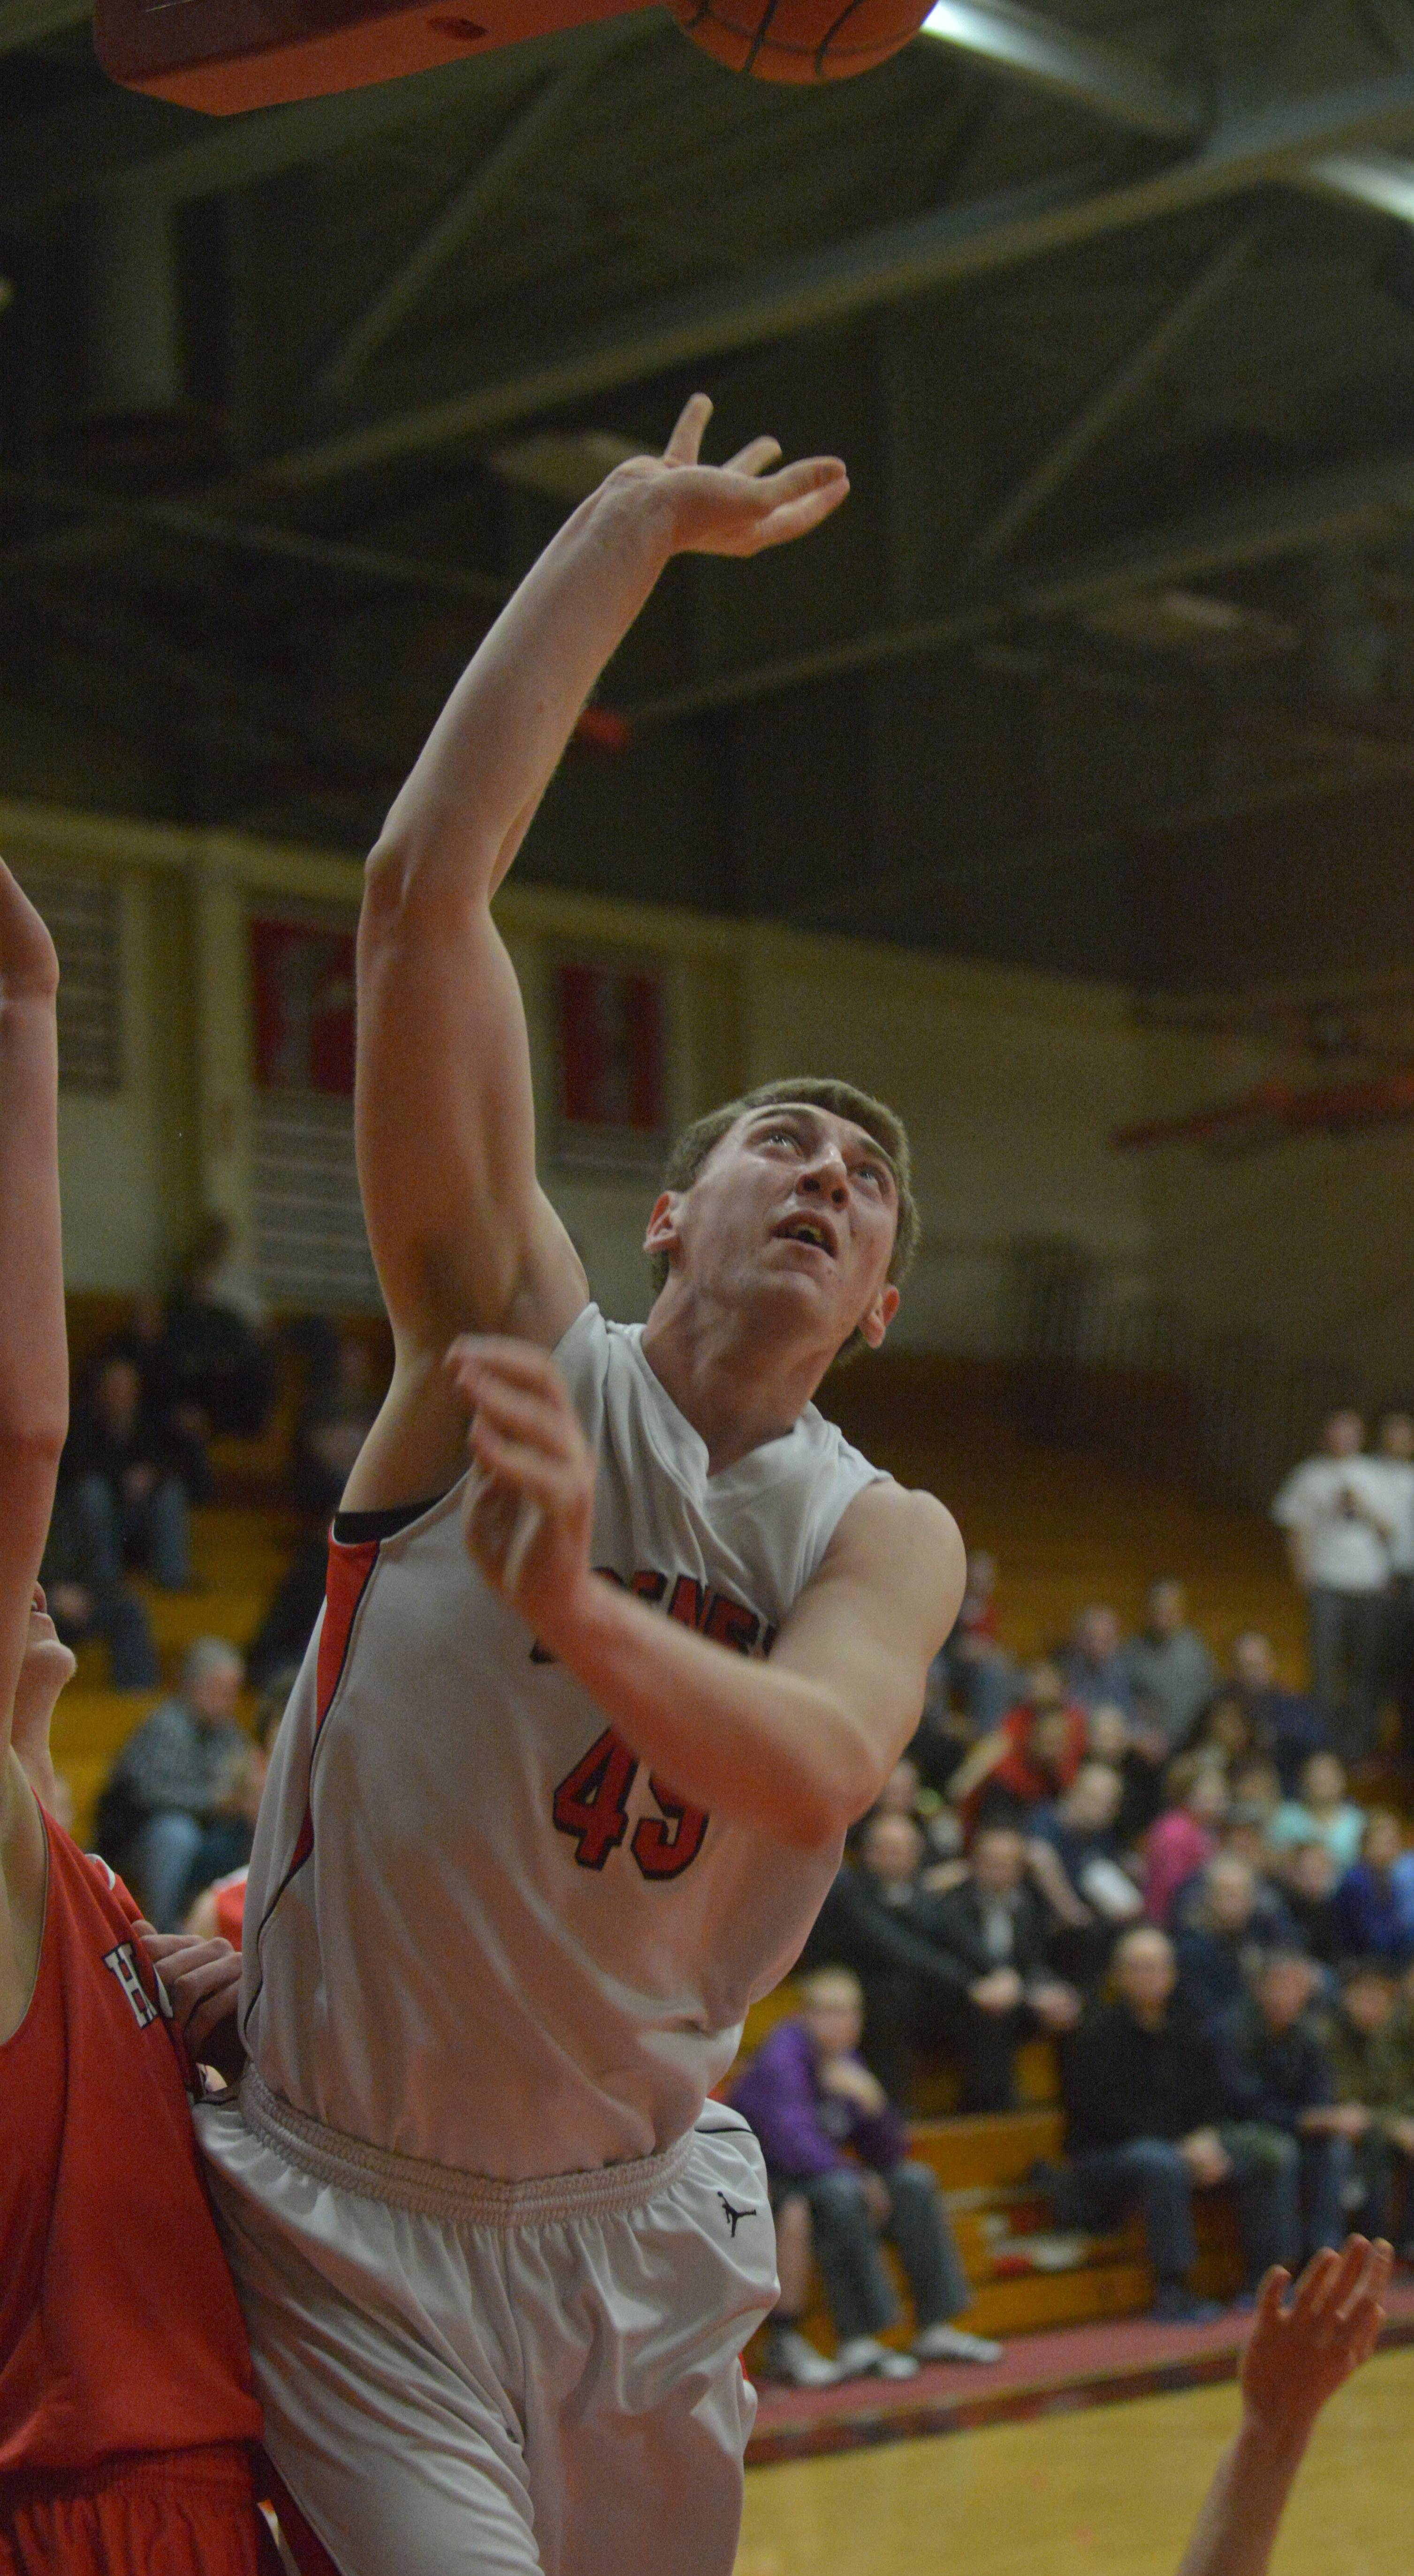 Benet vs. Hinsdale Central in Class 4A sectional semifinal basketball action Tuesday, March 11 at East Aurora High School.